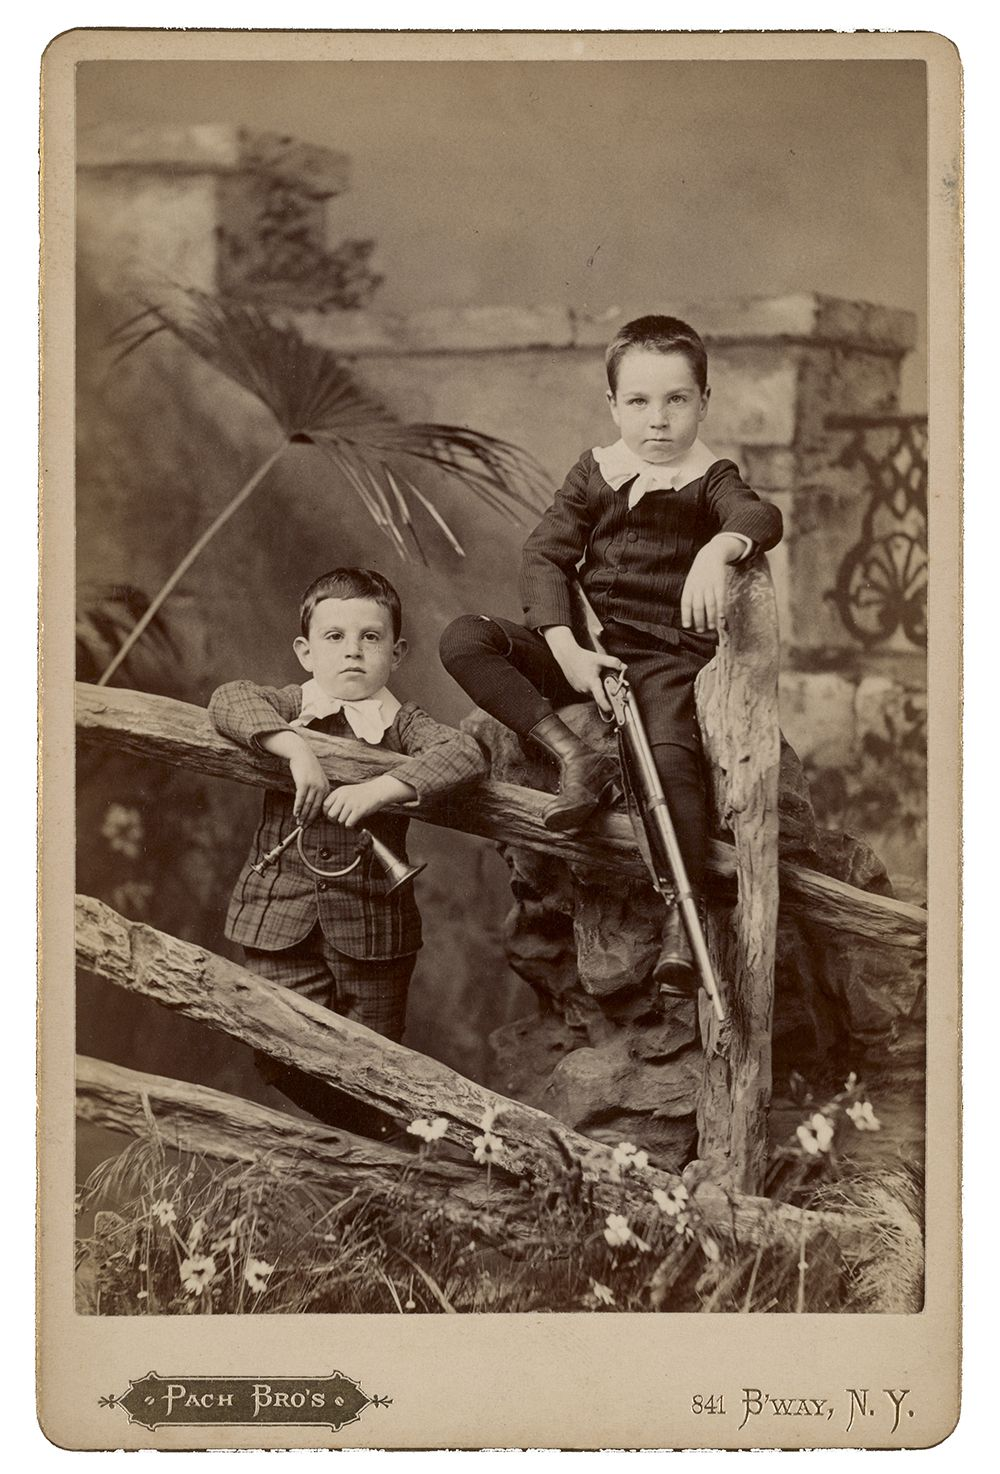 Photograph of brothers Alfred and Walter Pach as children.